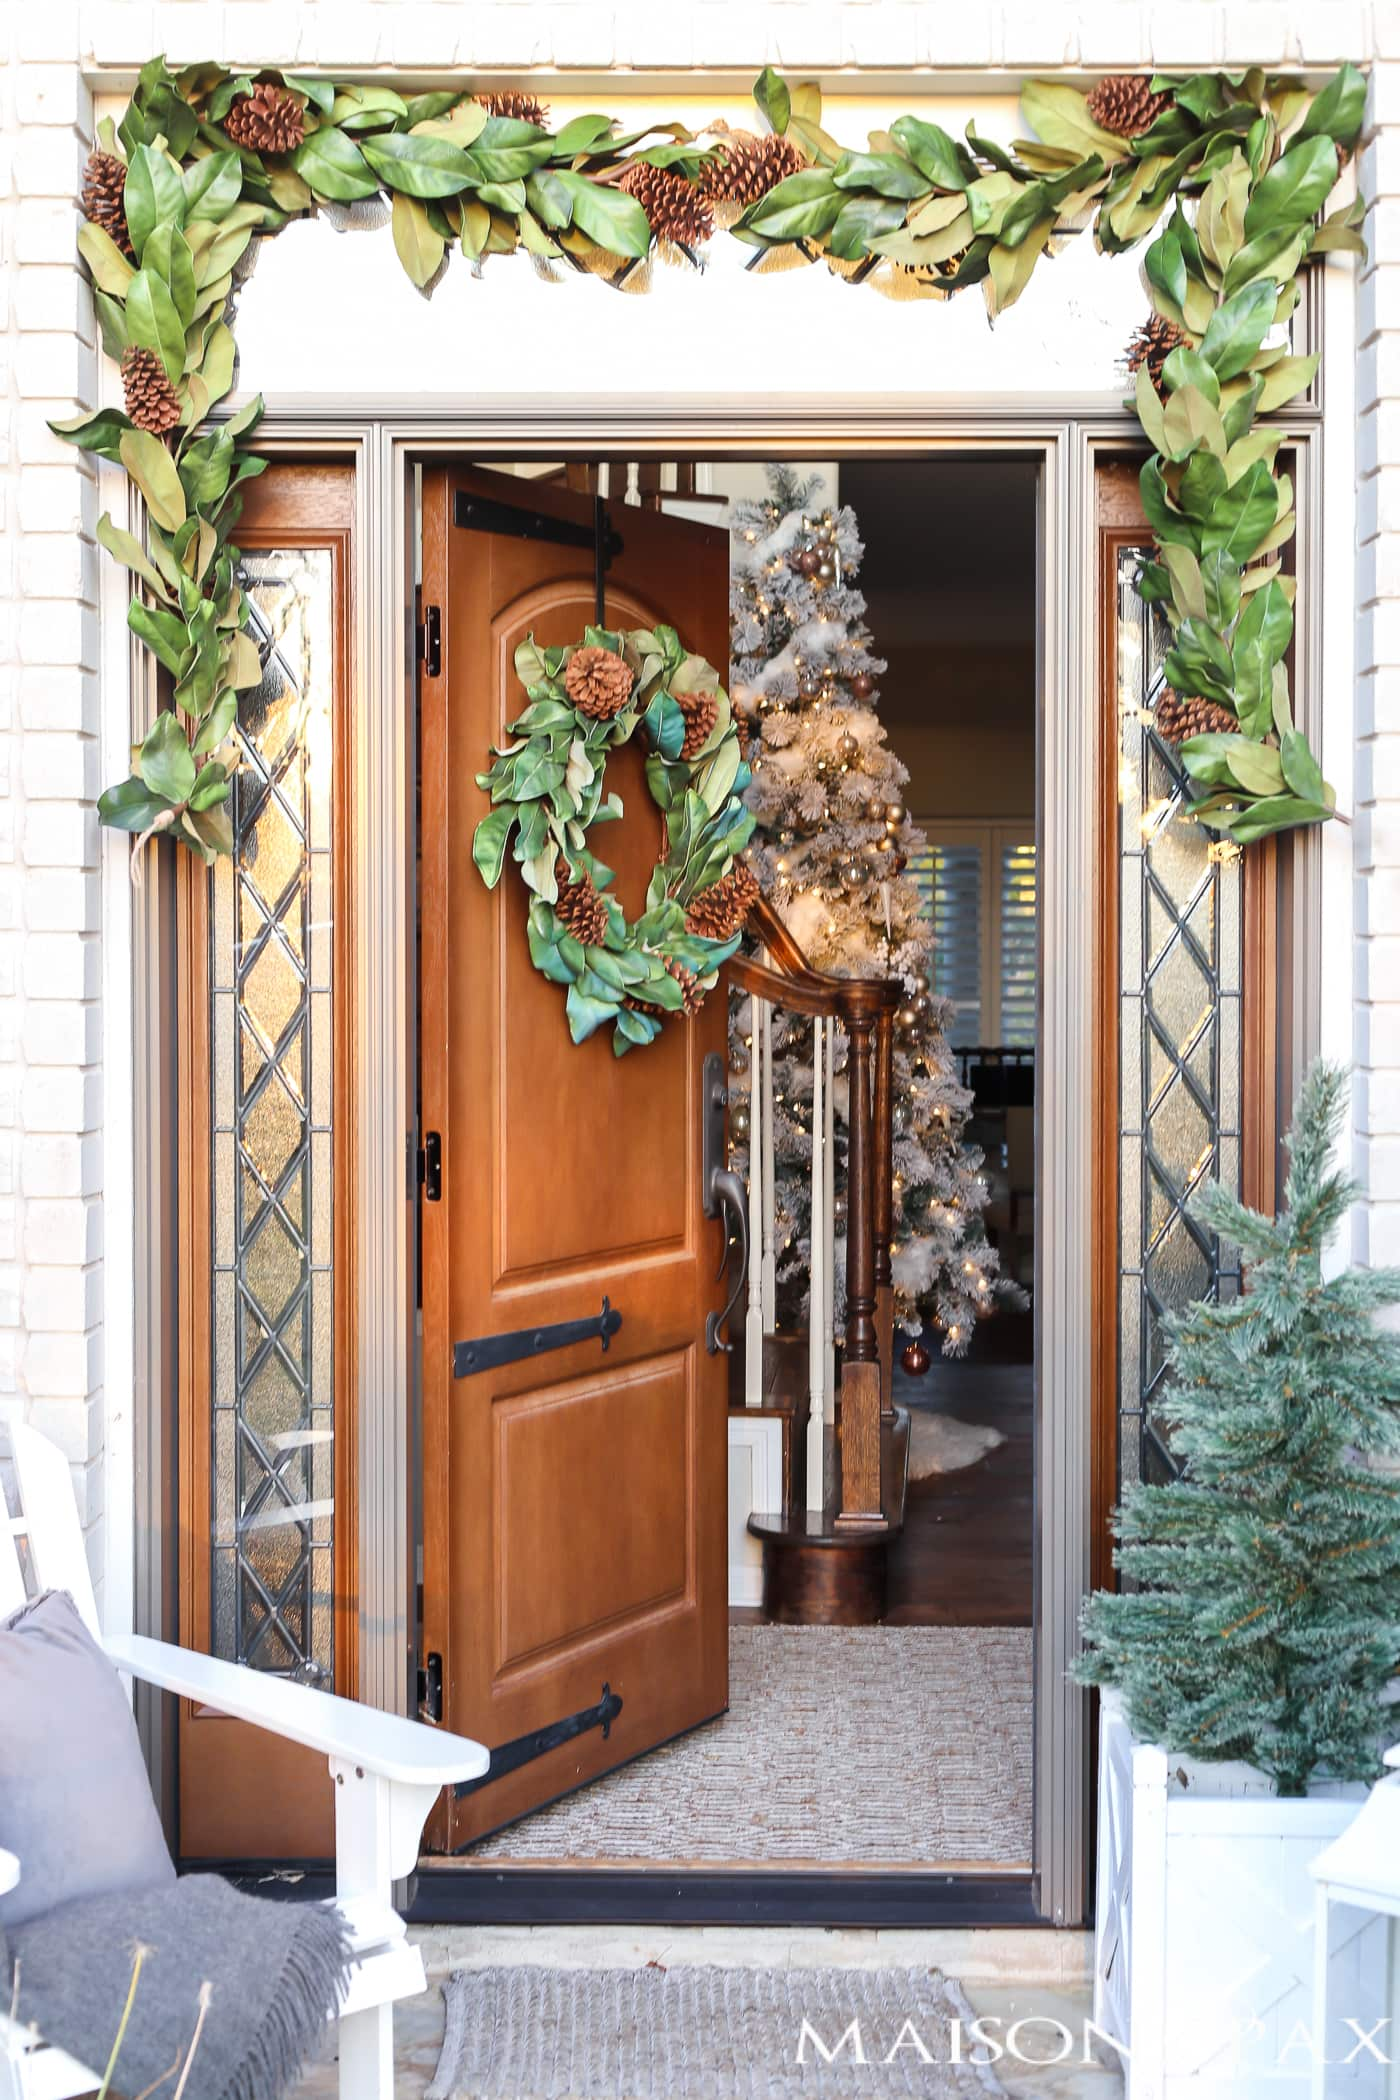 Magnolia Garland Around The Front Door And Magnolia Wreath On The Door   So  Southern And